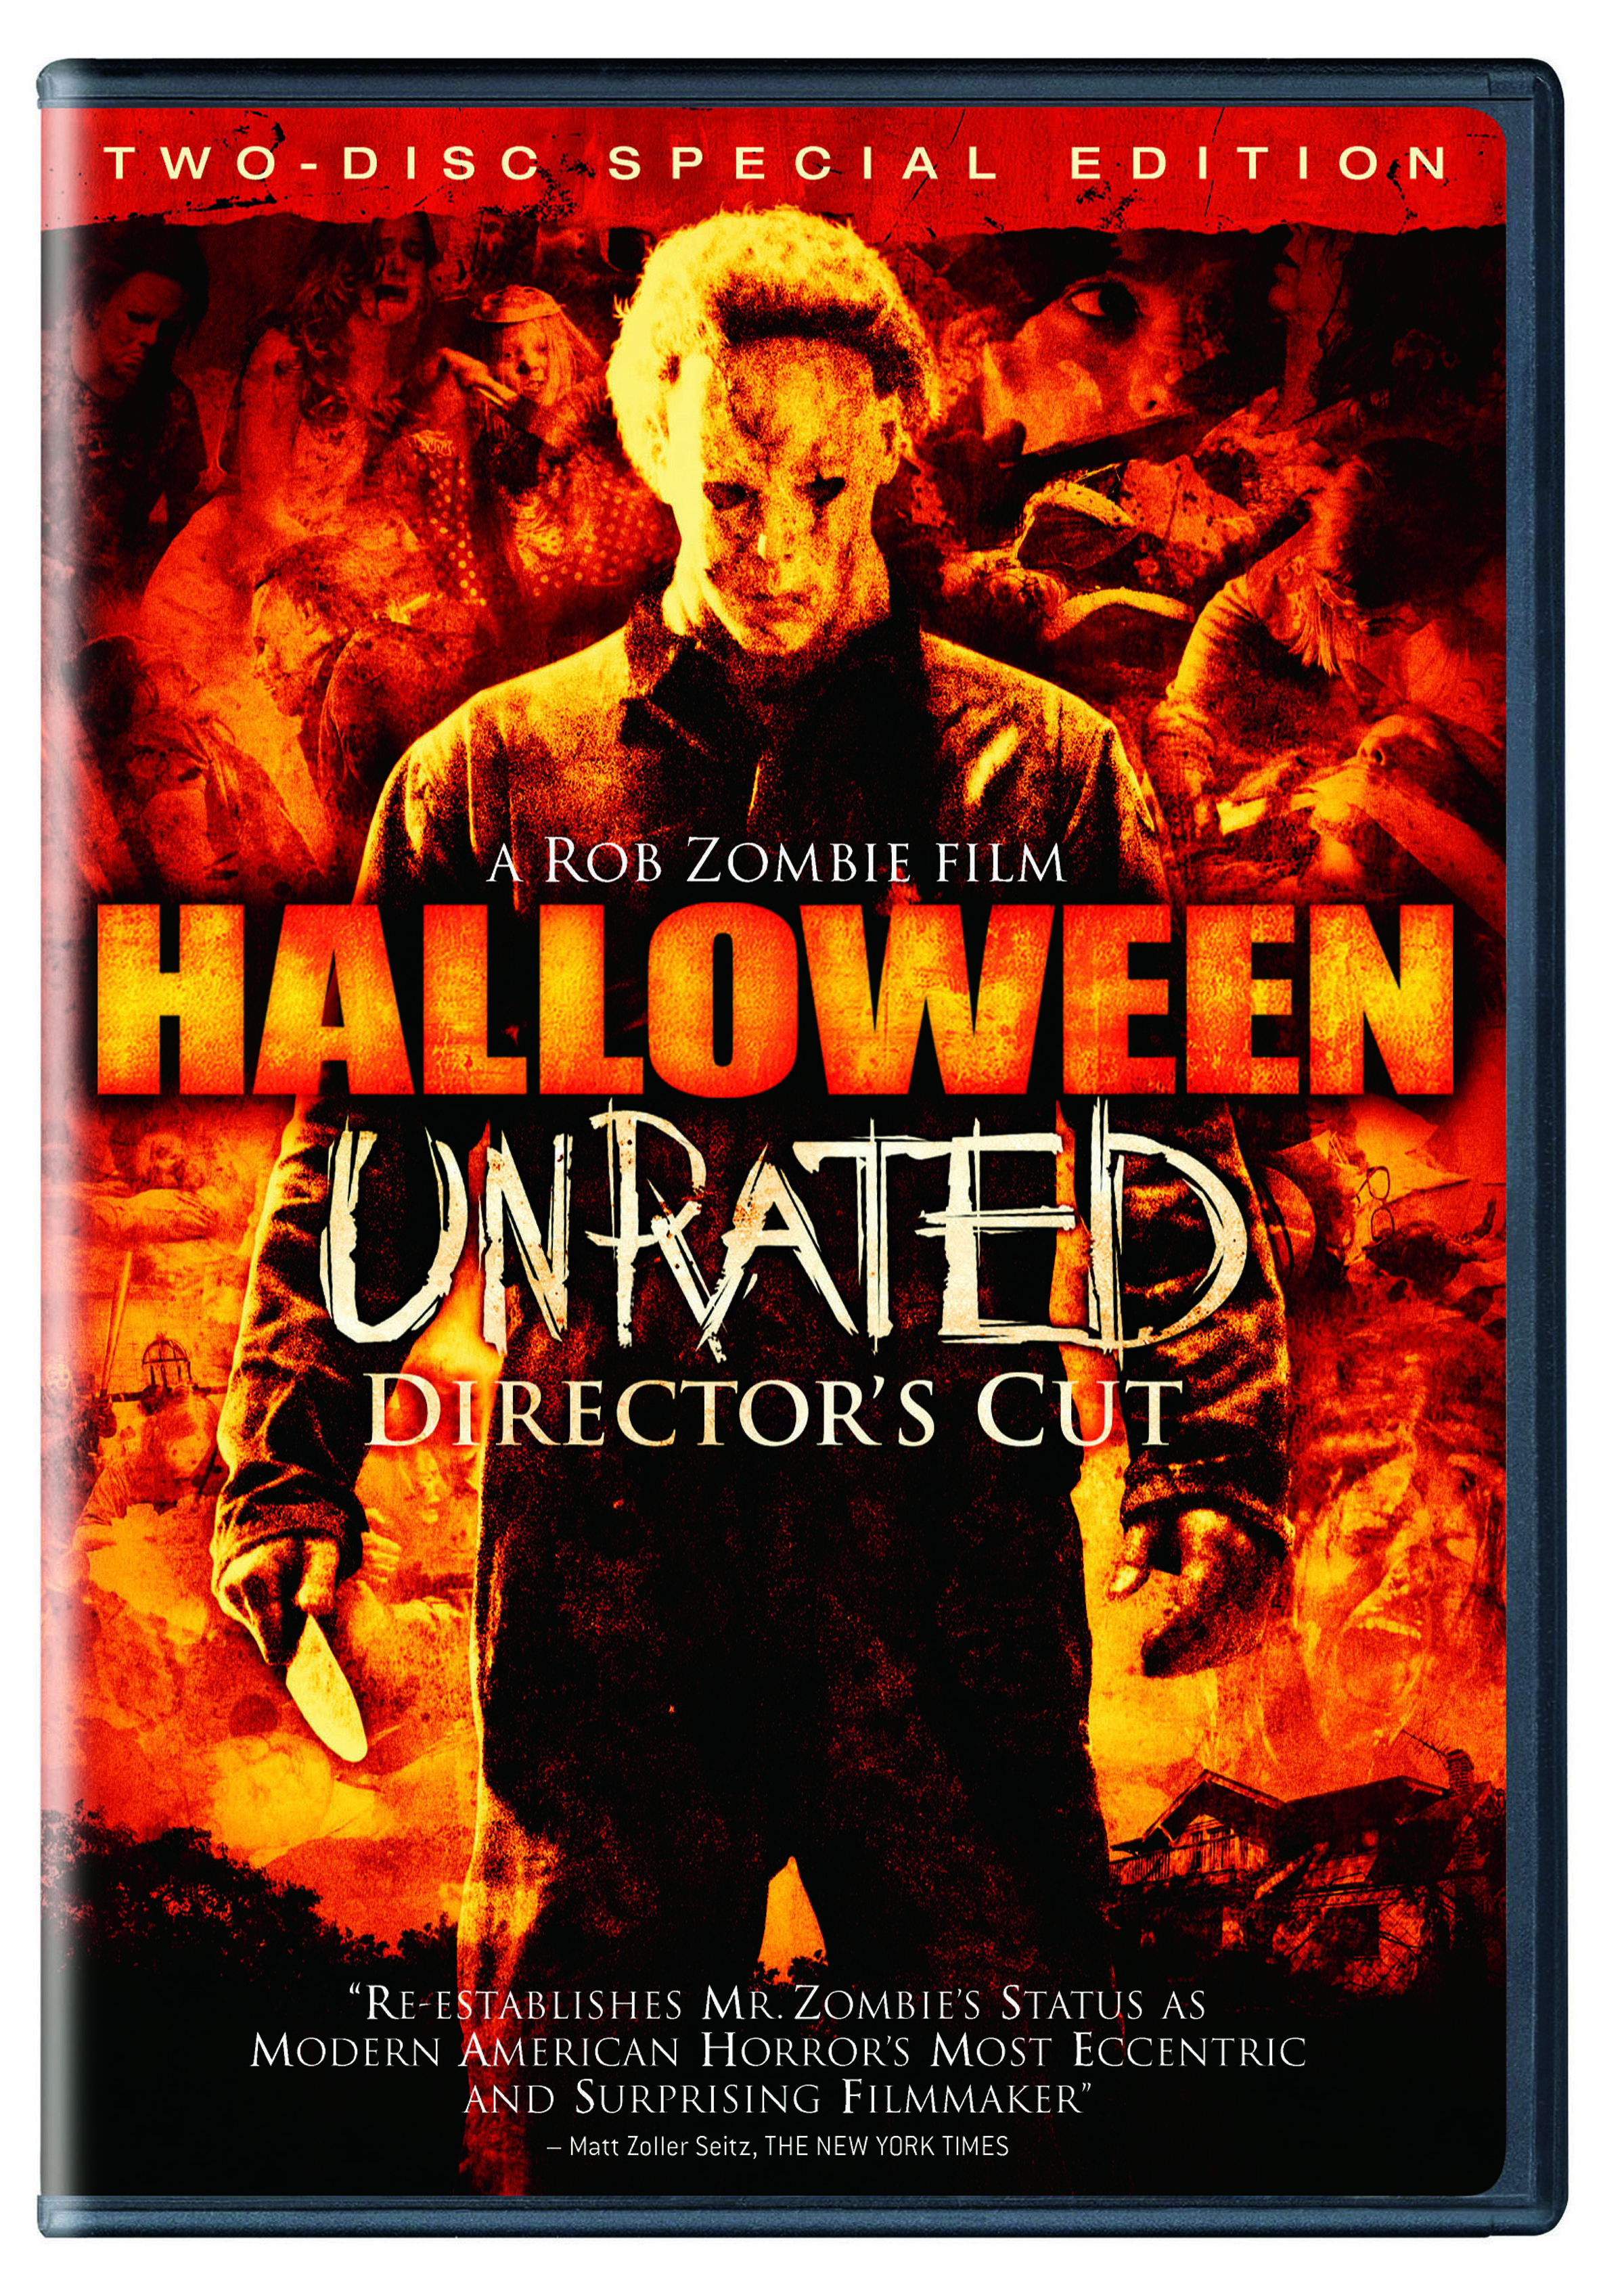 Halloween Unrated Director's Cut (Single Disc) - The